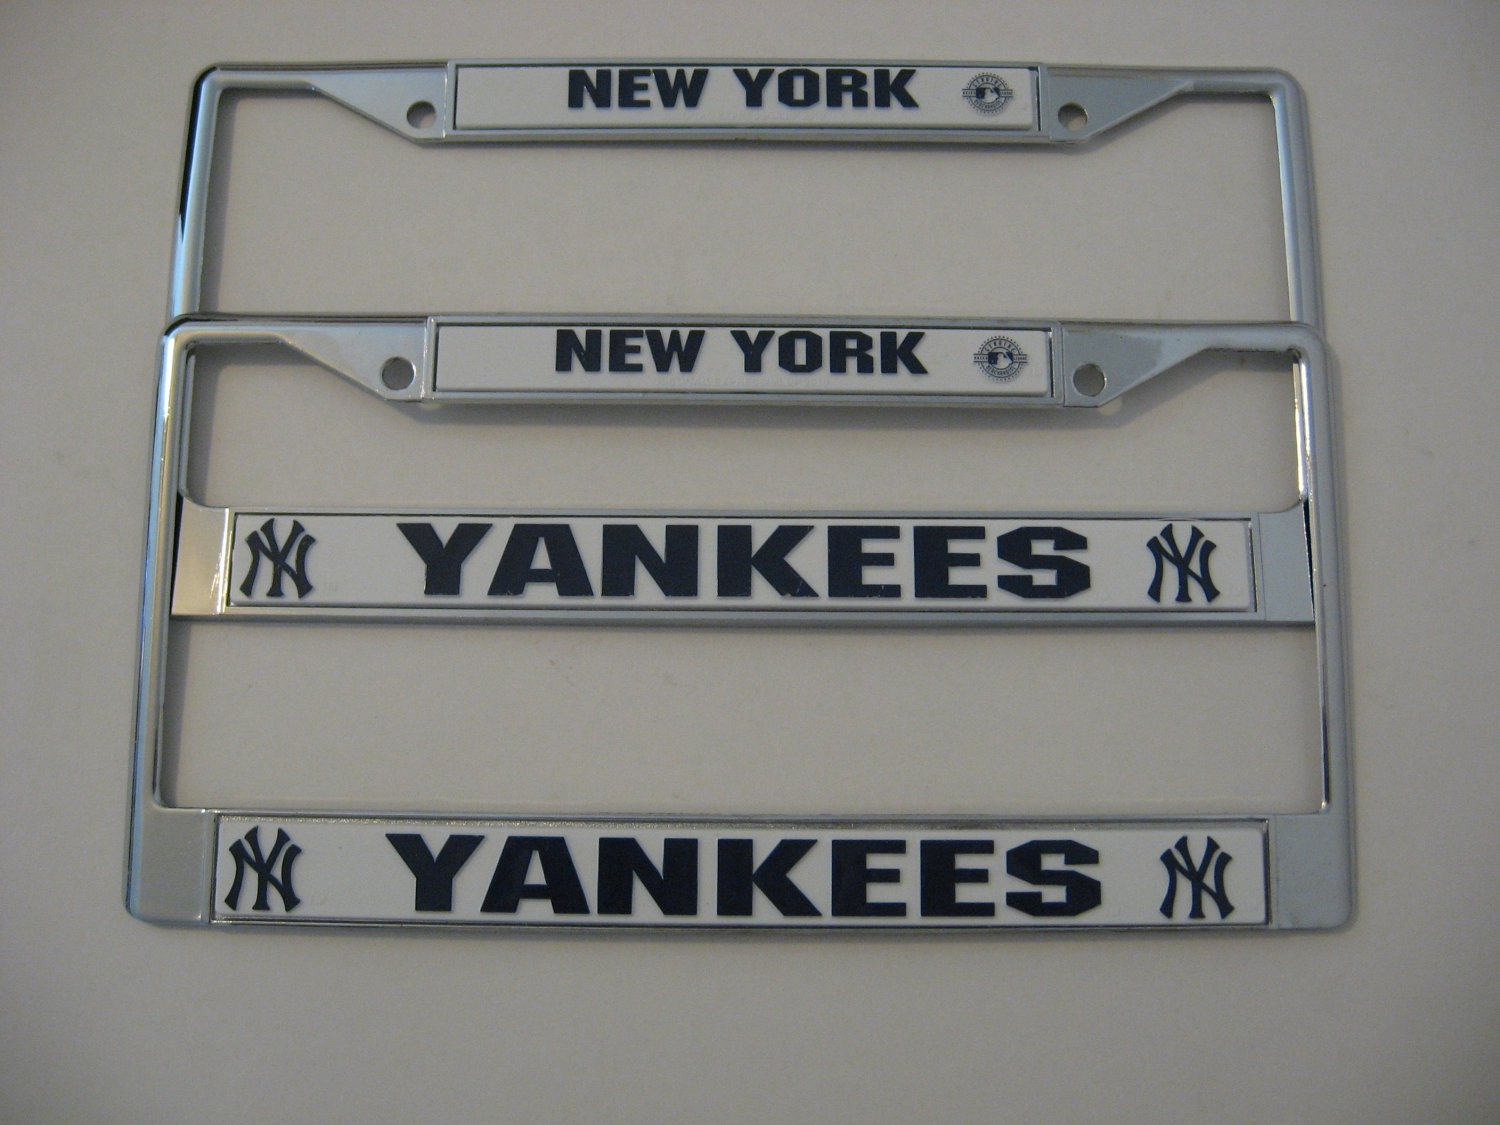 New York Yankees - Chrome License Plate